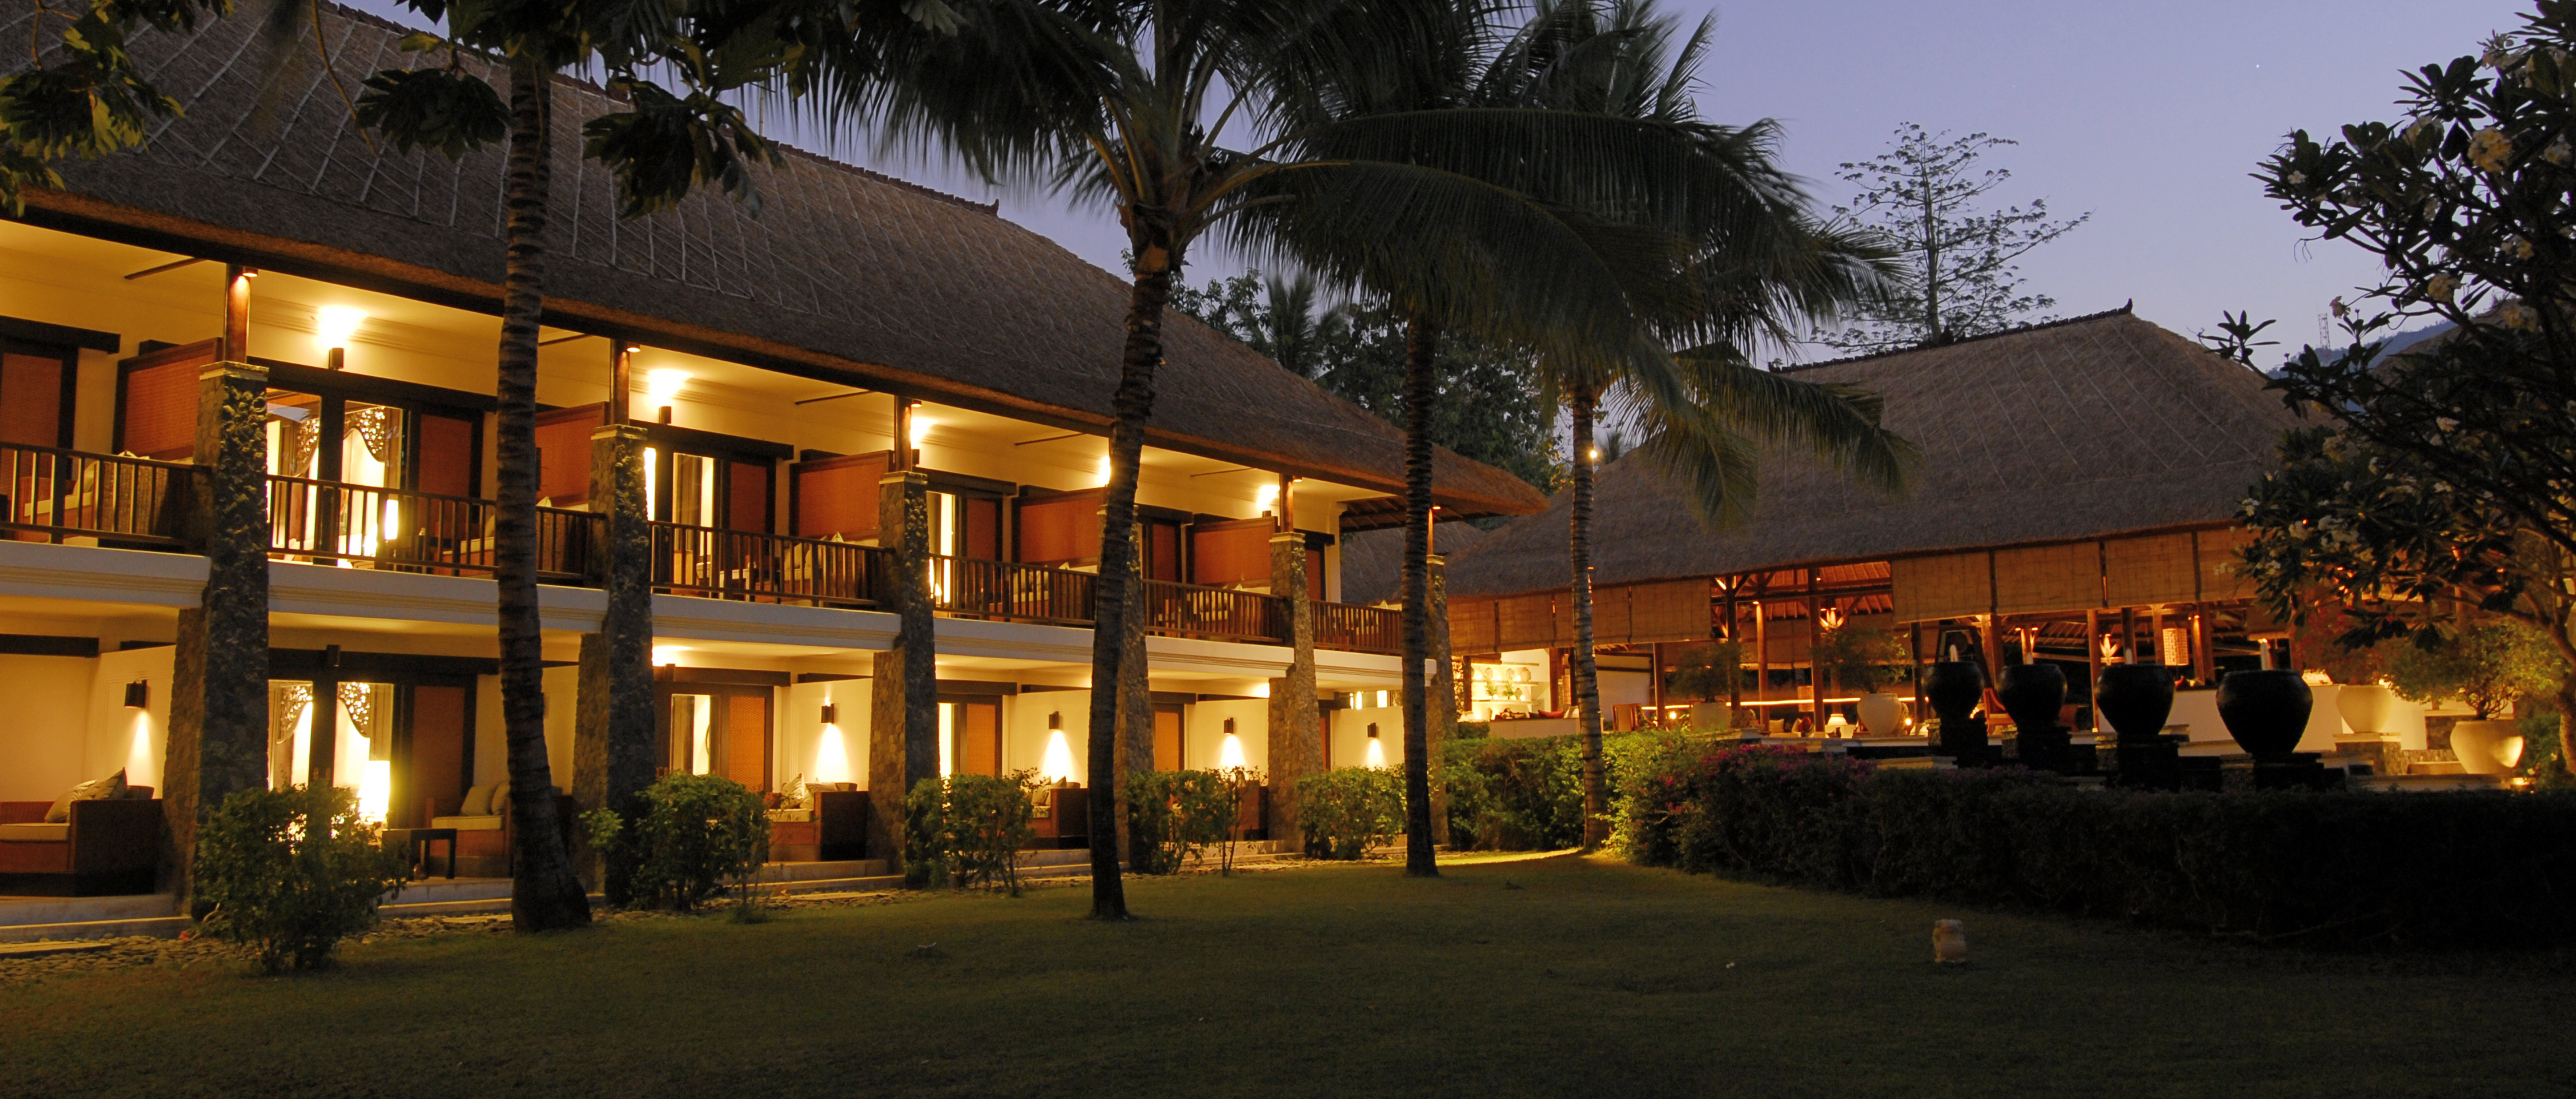 spa-village-tembok-night